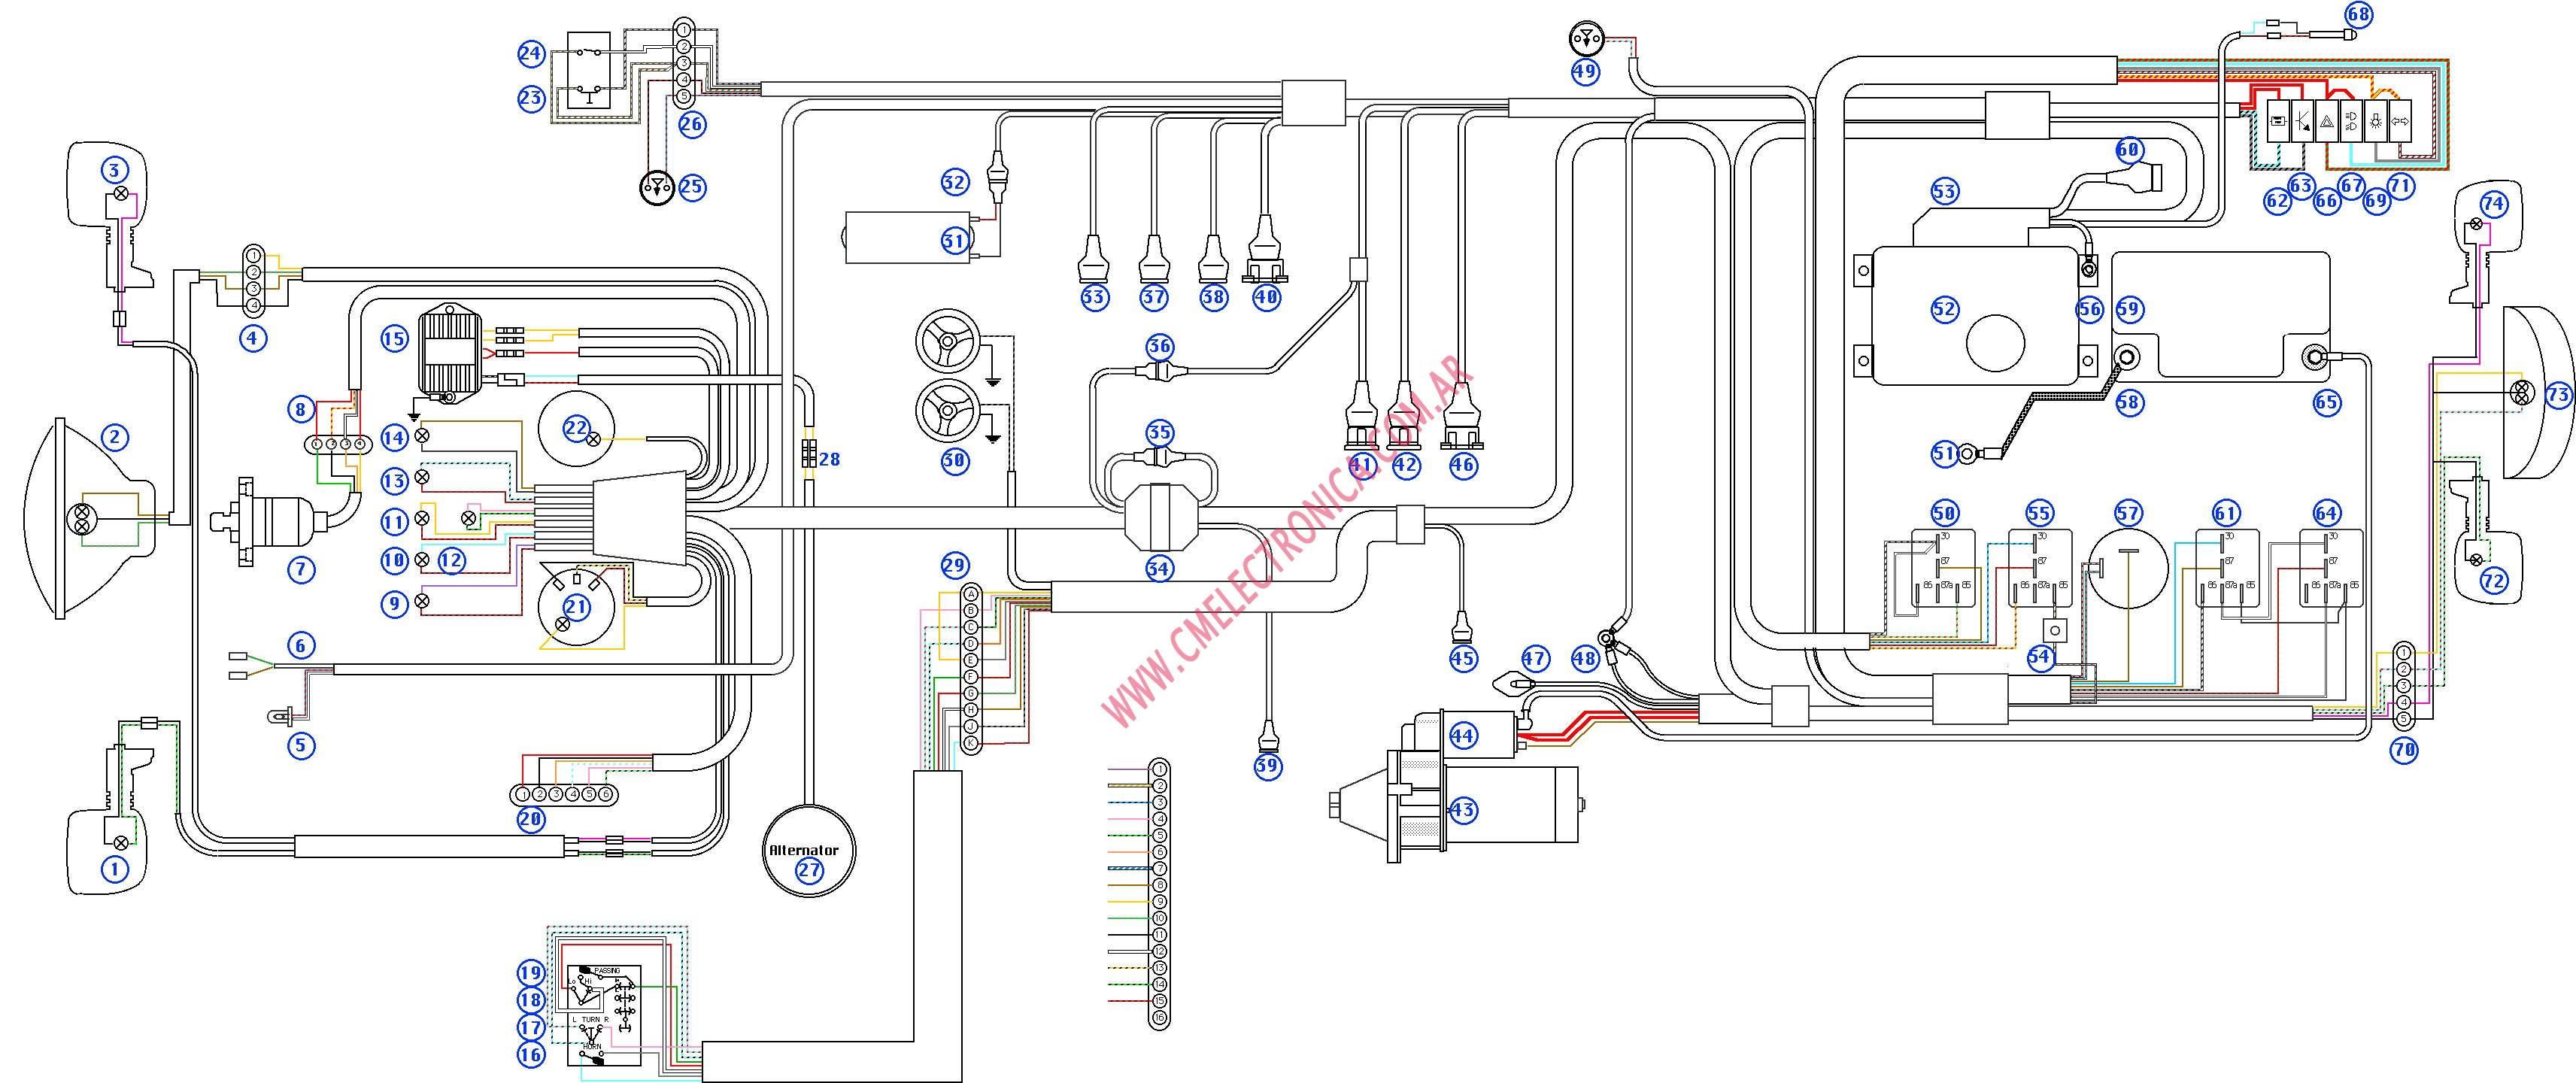 96 maxima wiring diagram